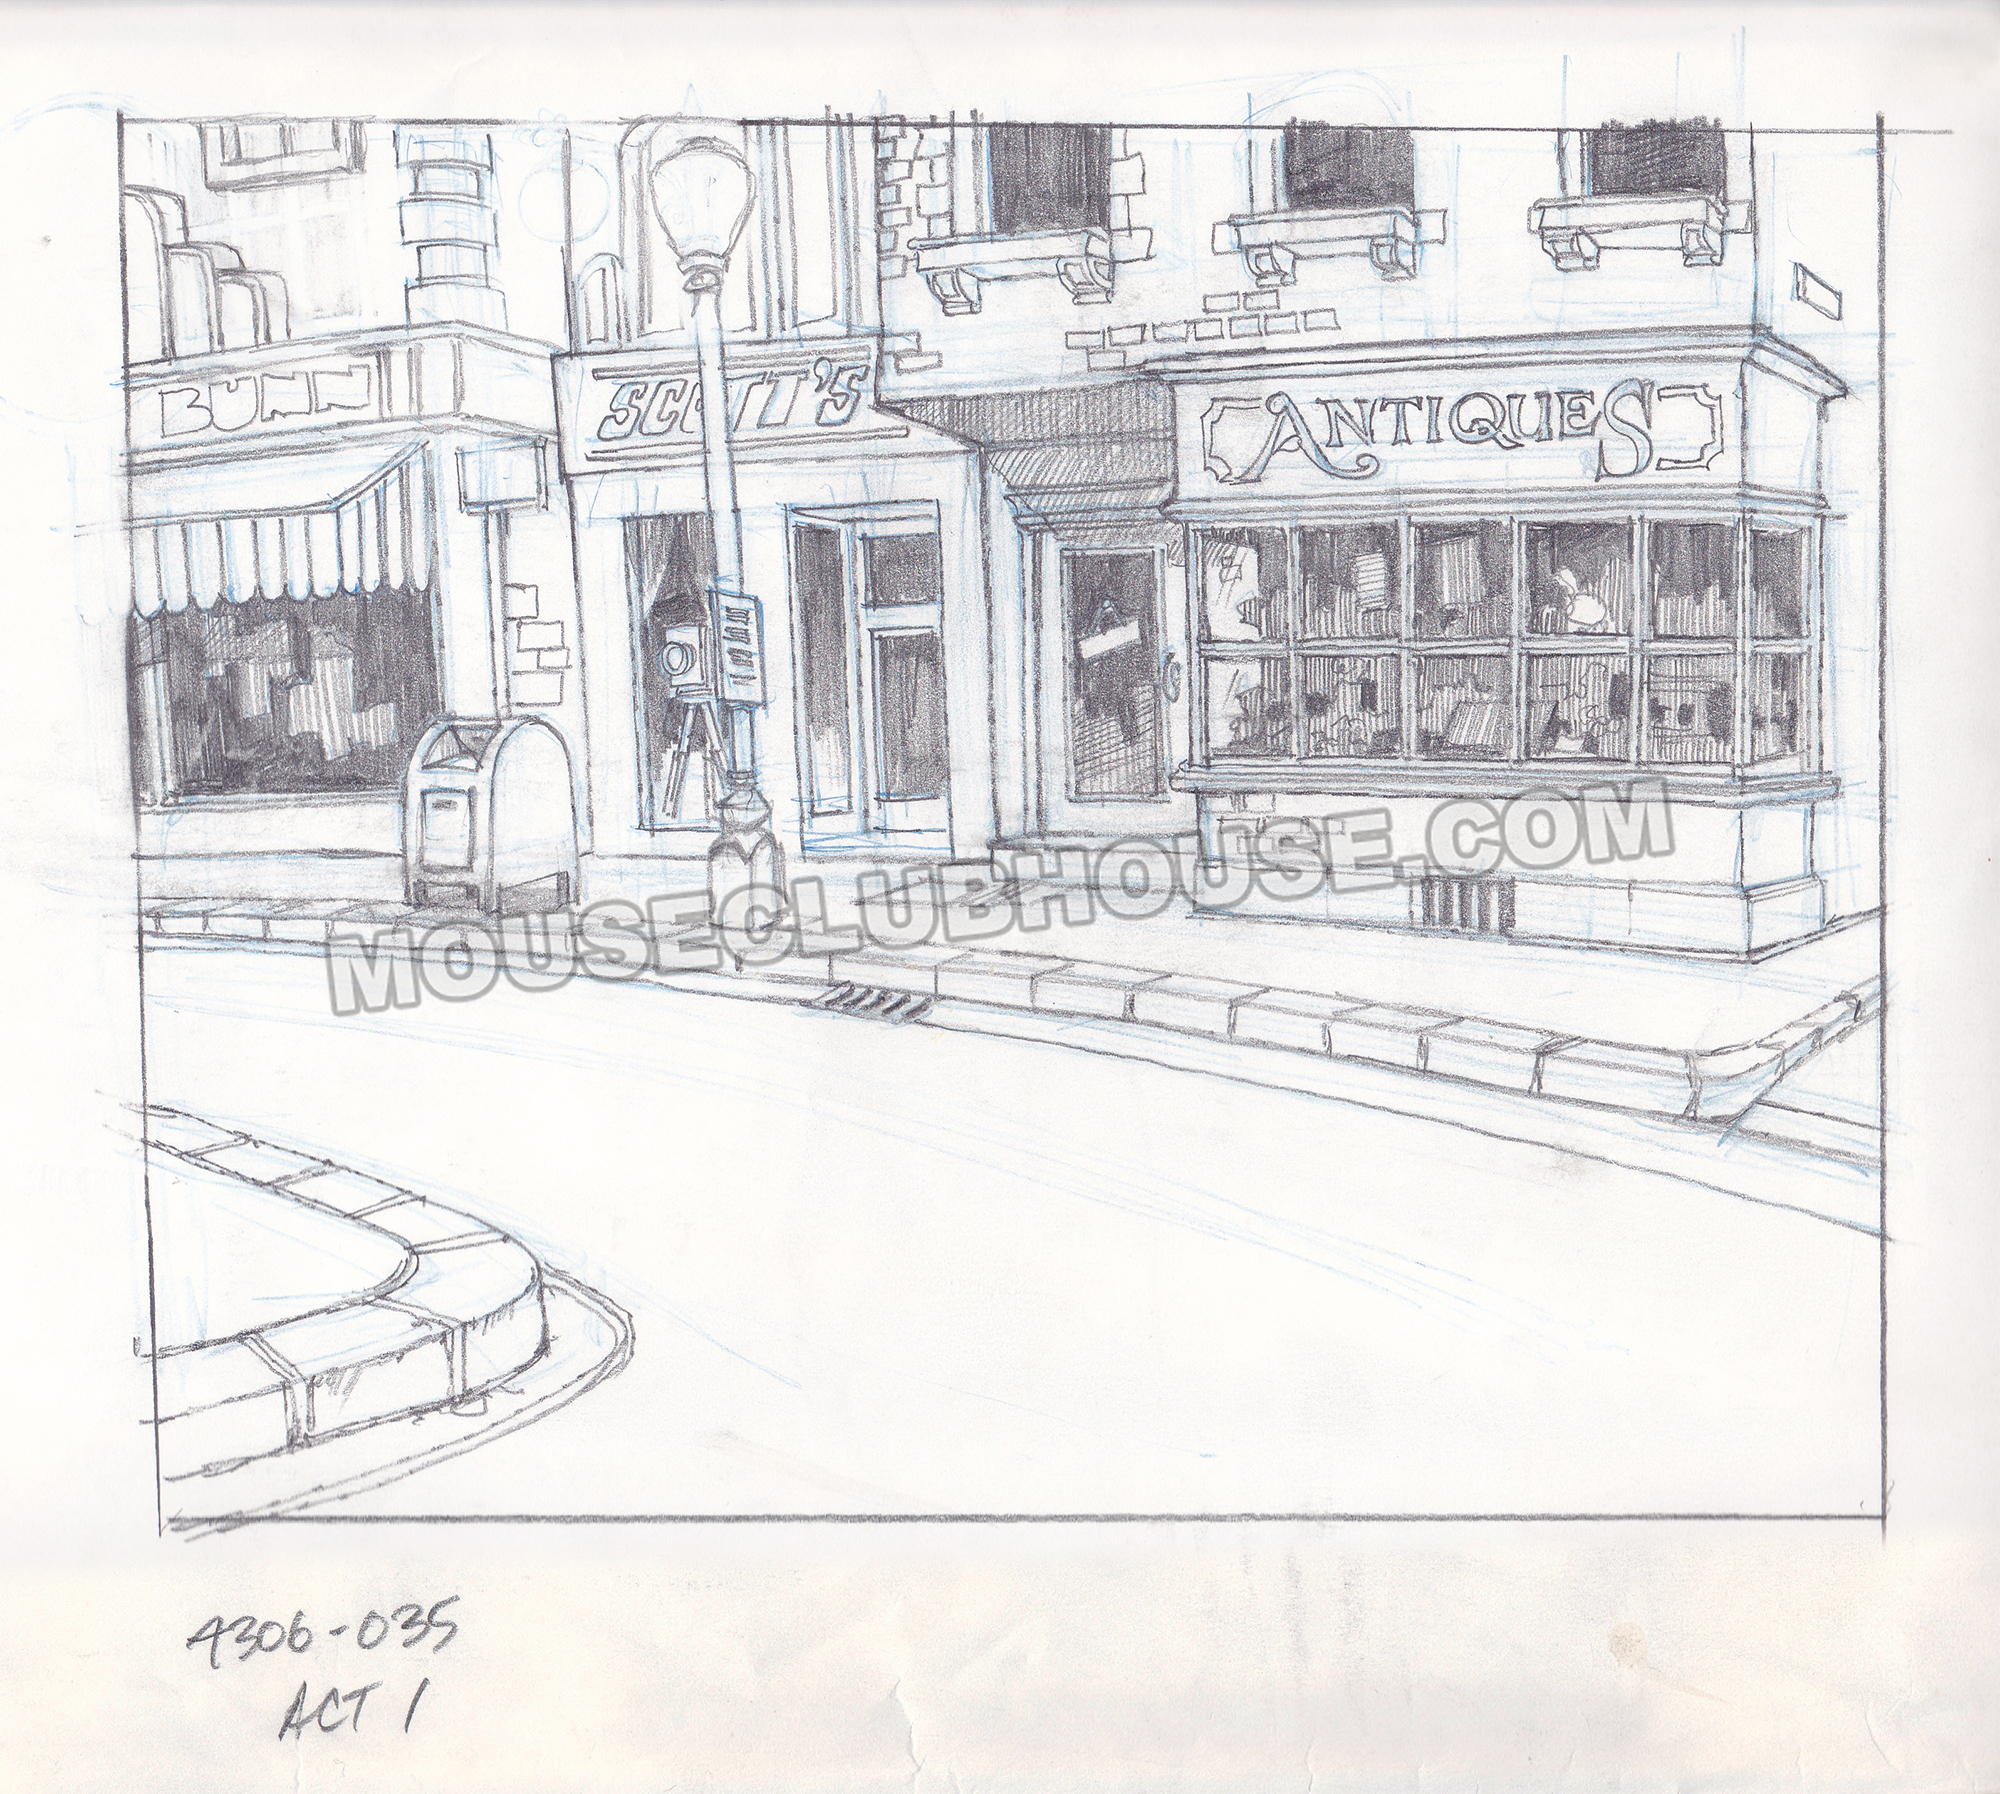 TaleSpin artist Derek Carter gave me my own camera shop in this TaleSpin layout key